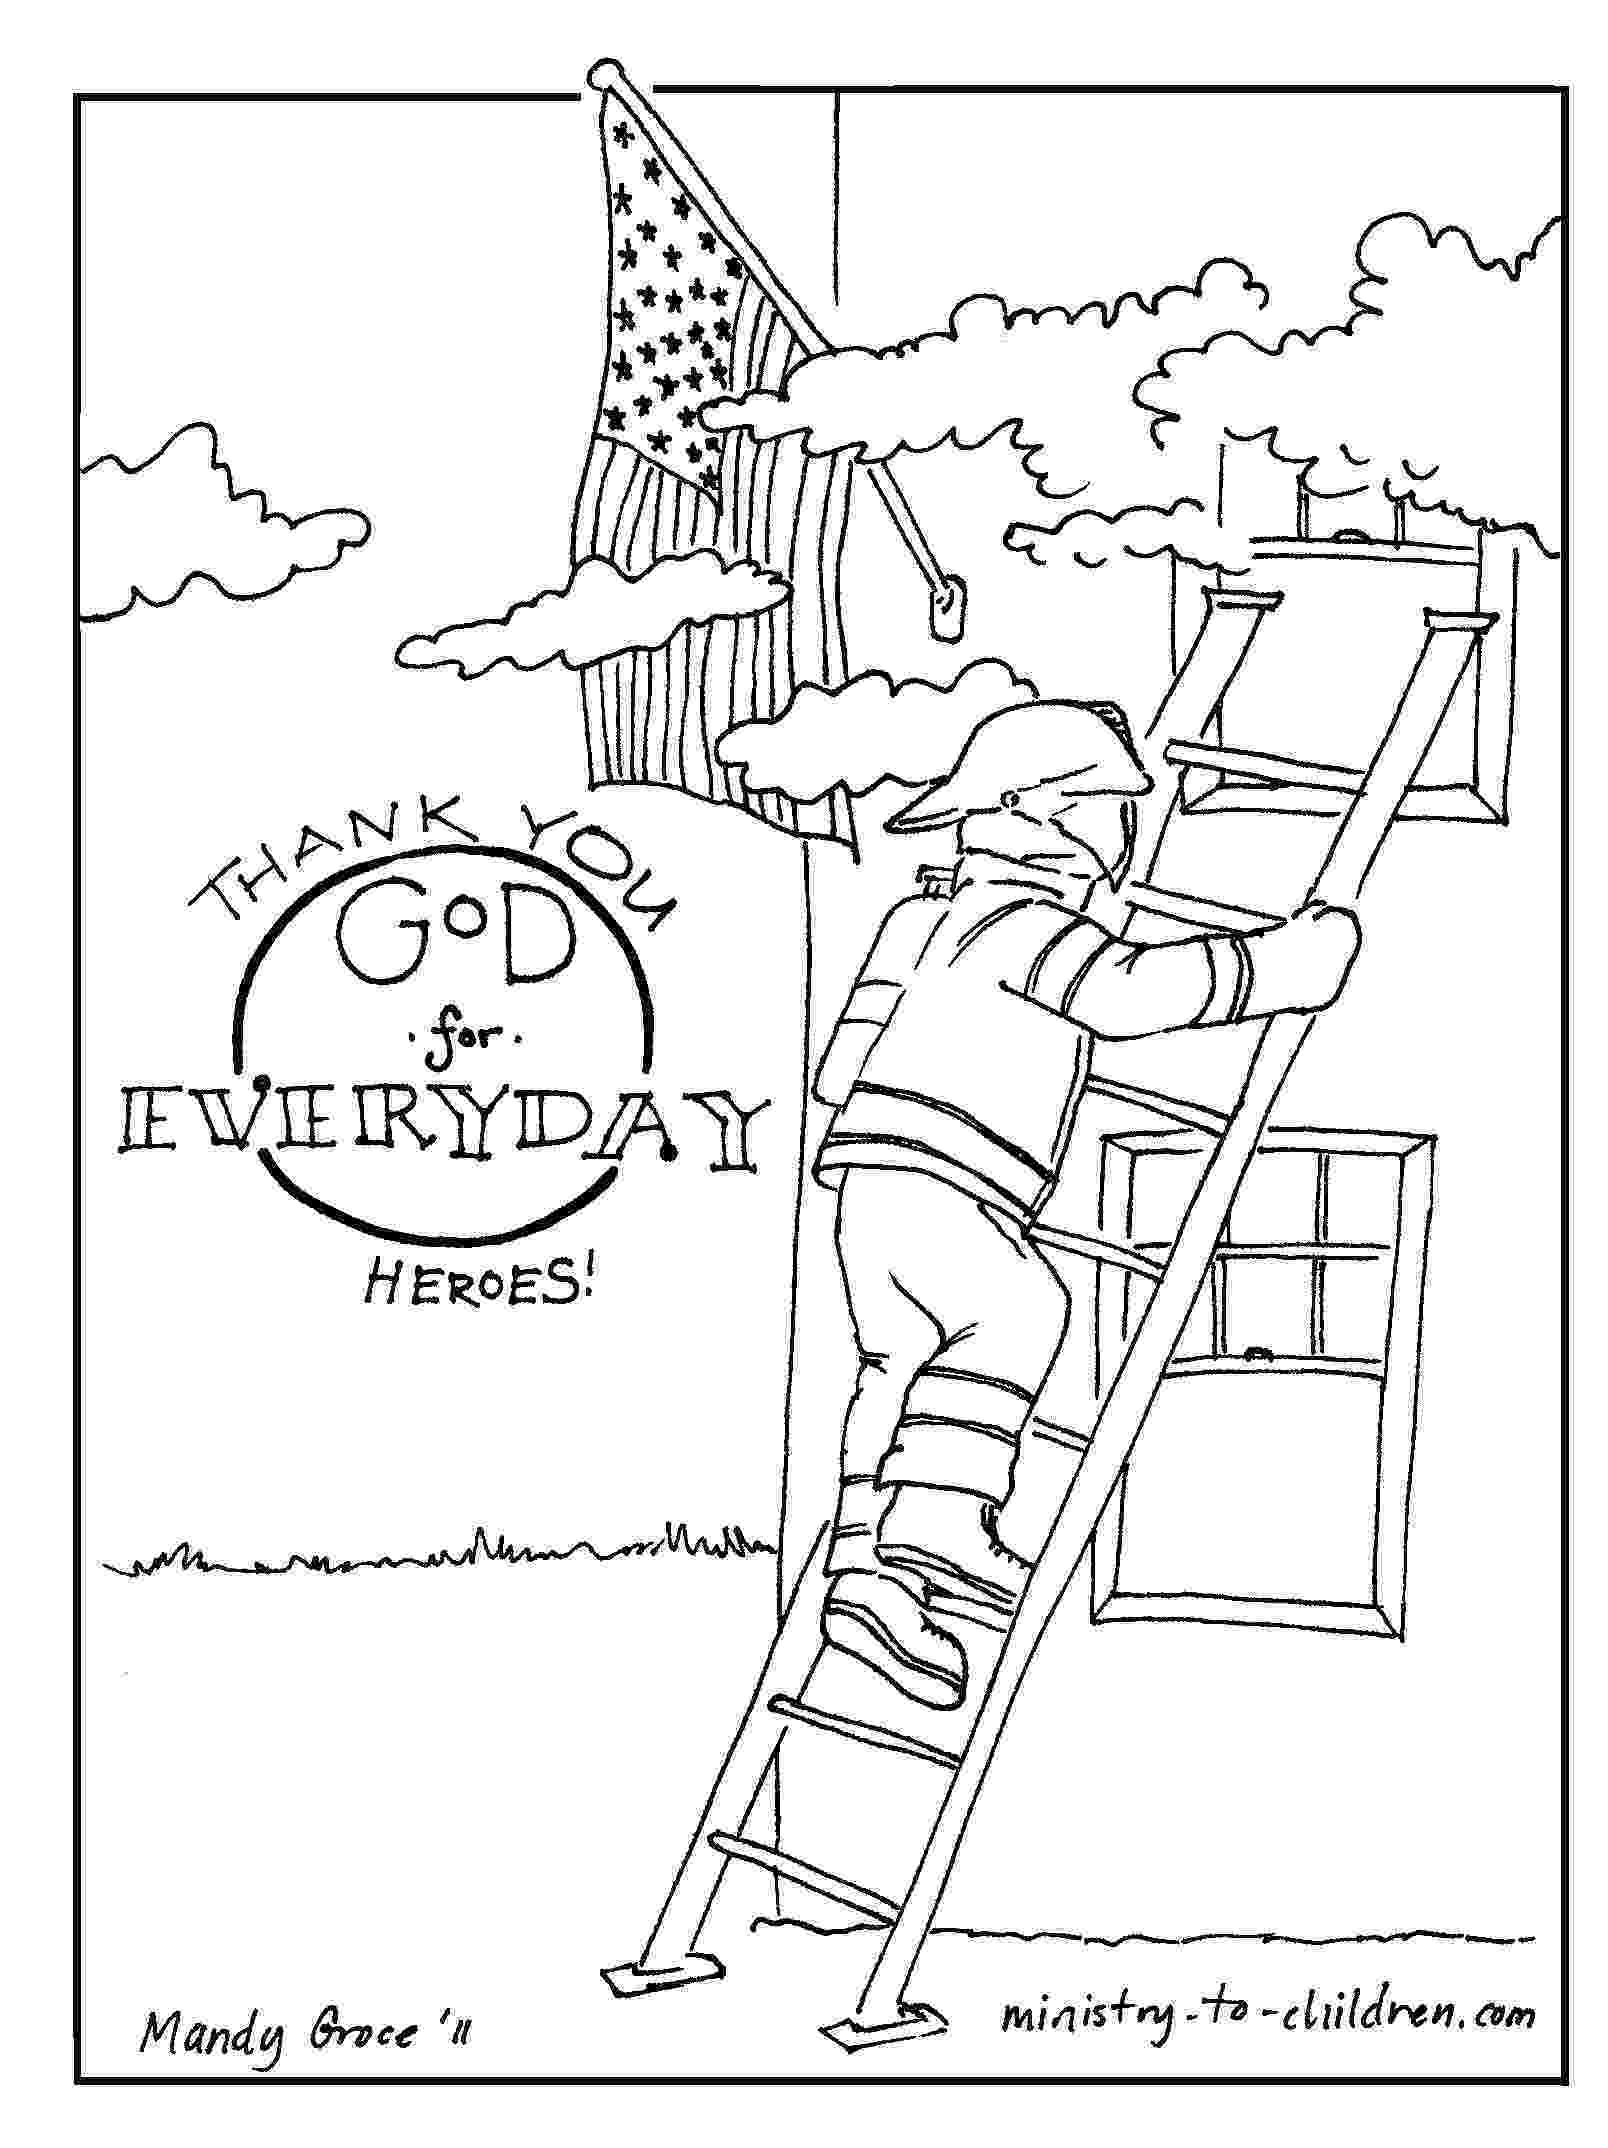 fire fighting coloring pages firefighter coloring page fire fighter coloring page pages coloring fire fighting